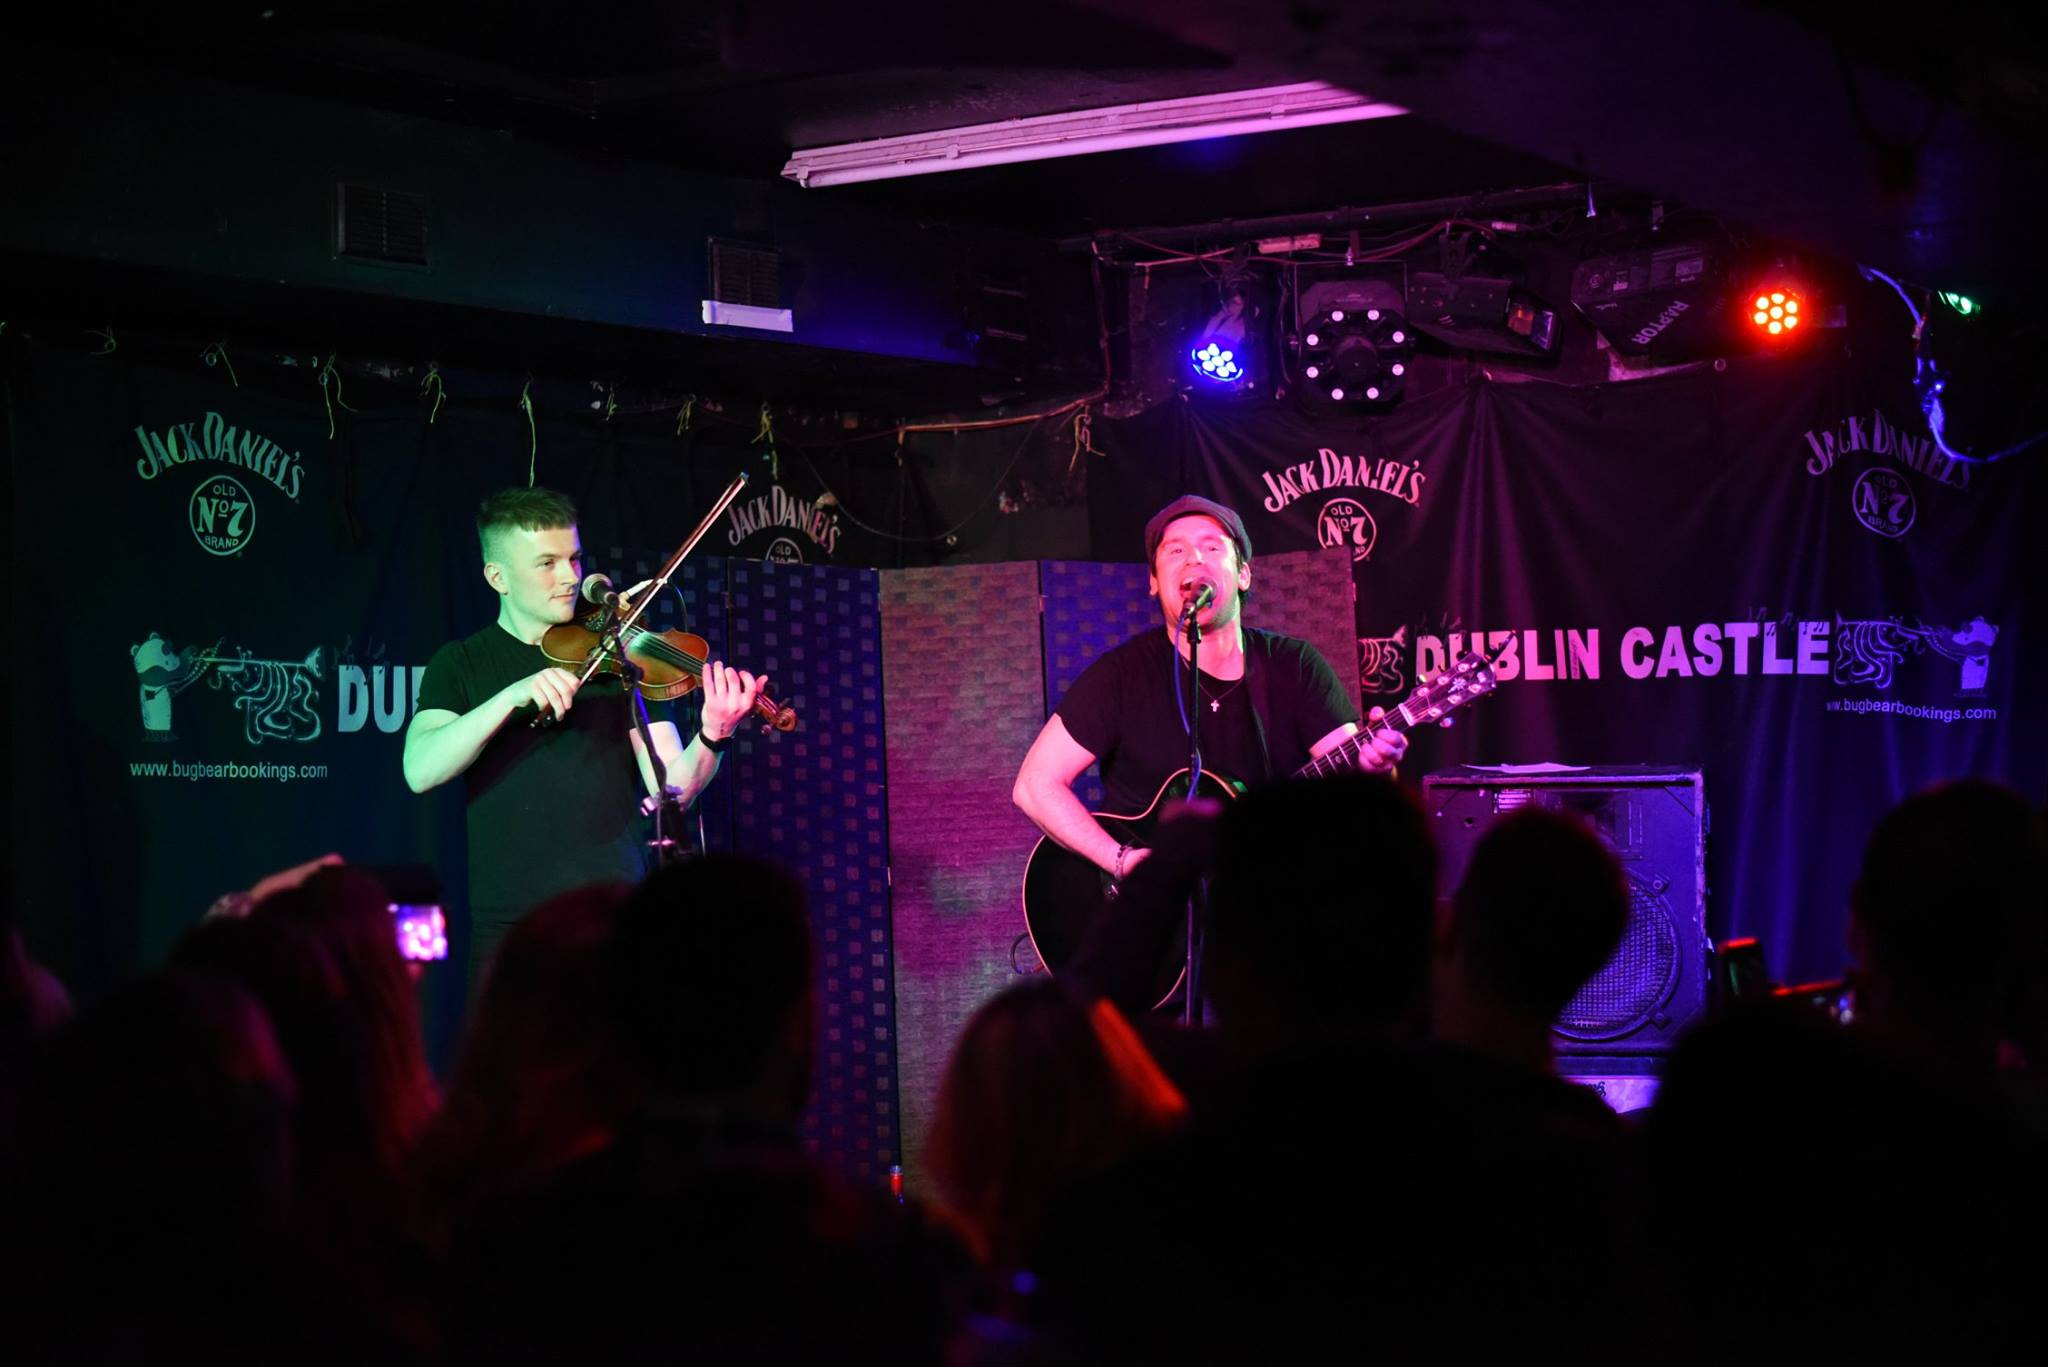 Live at The Dublin Castle